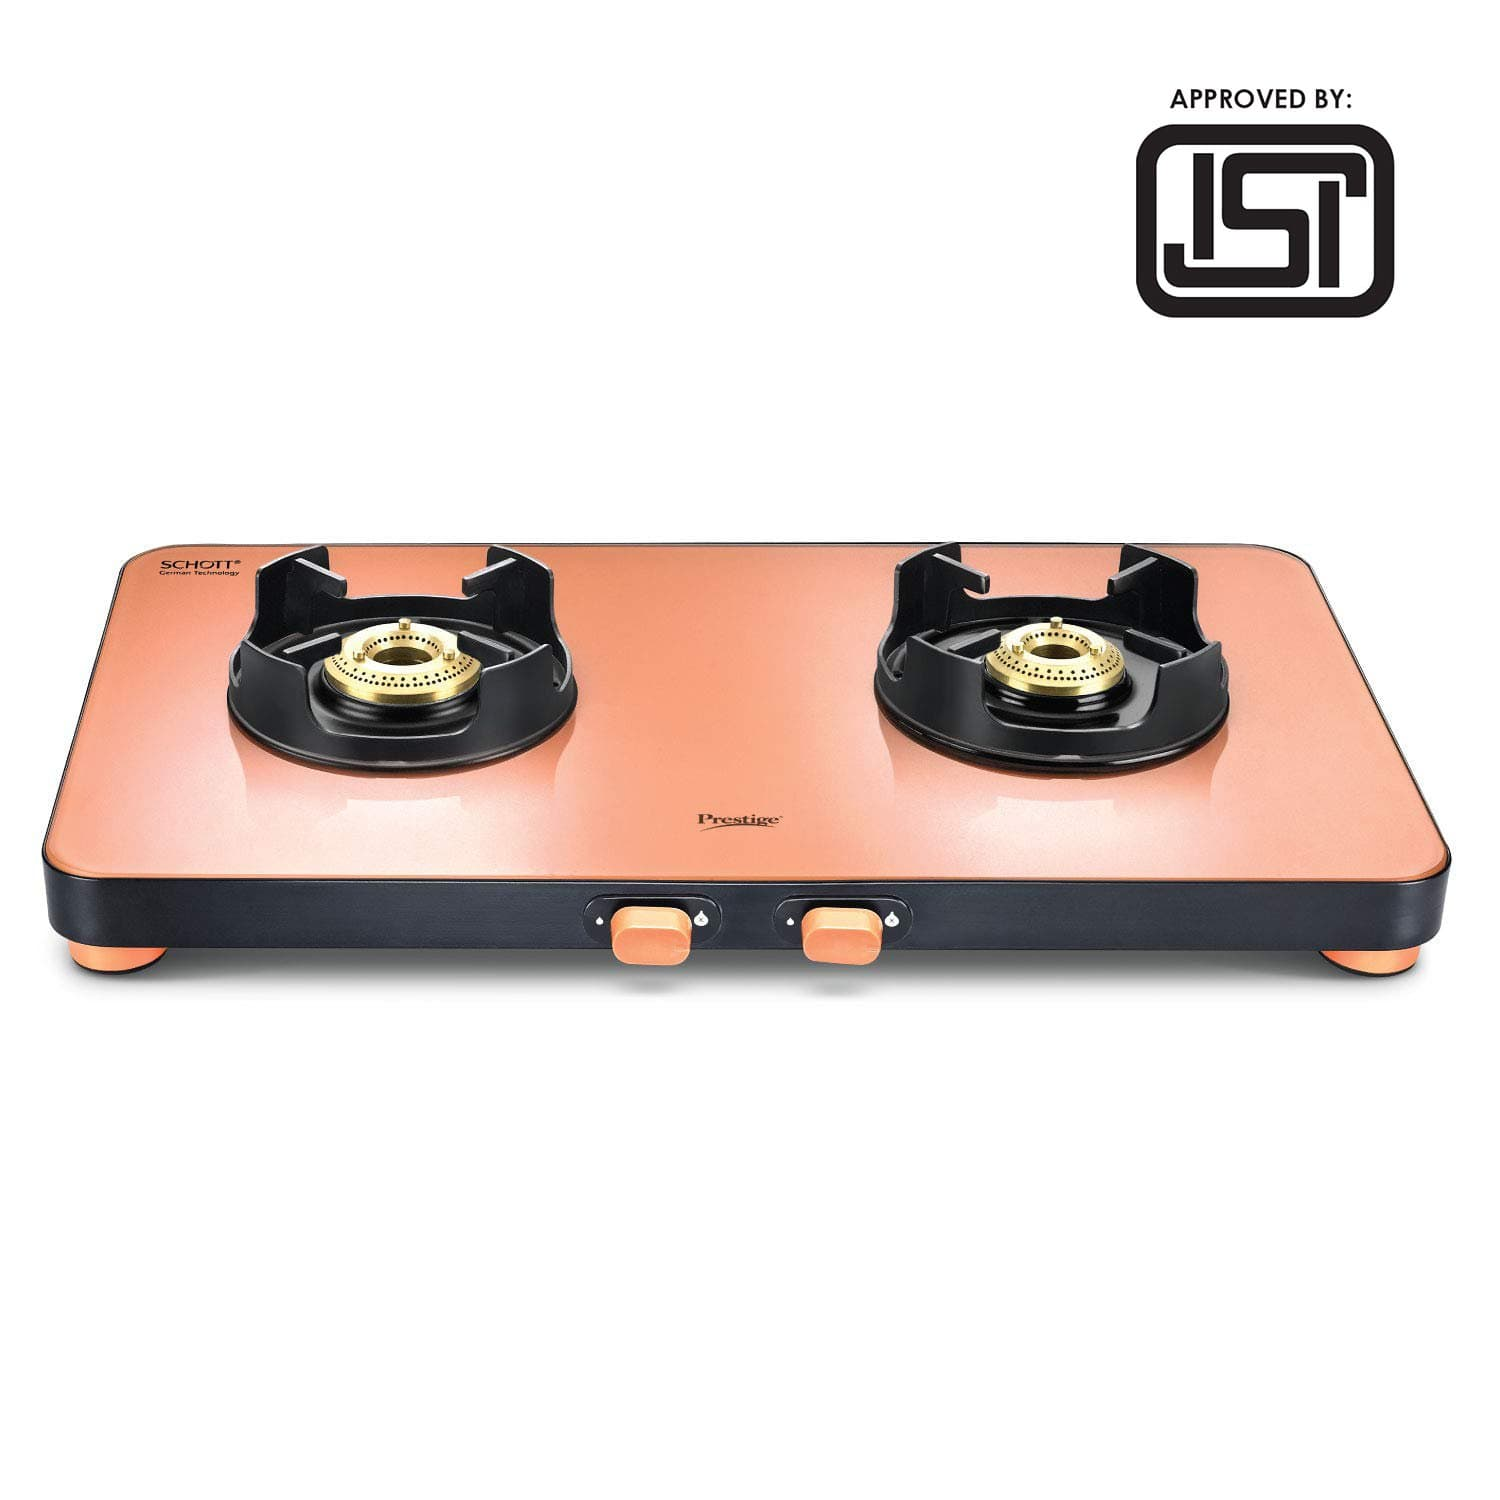 Prestige Edge Schott Glass 2 Burner Gas Stove, Pastel (ISI Approved) PEPS02 - KITCHEN MART